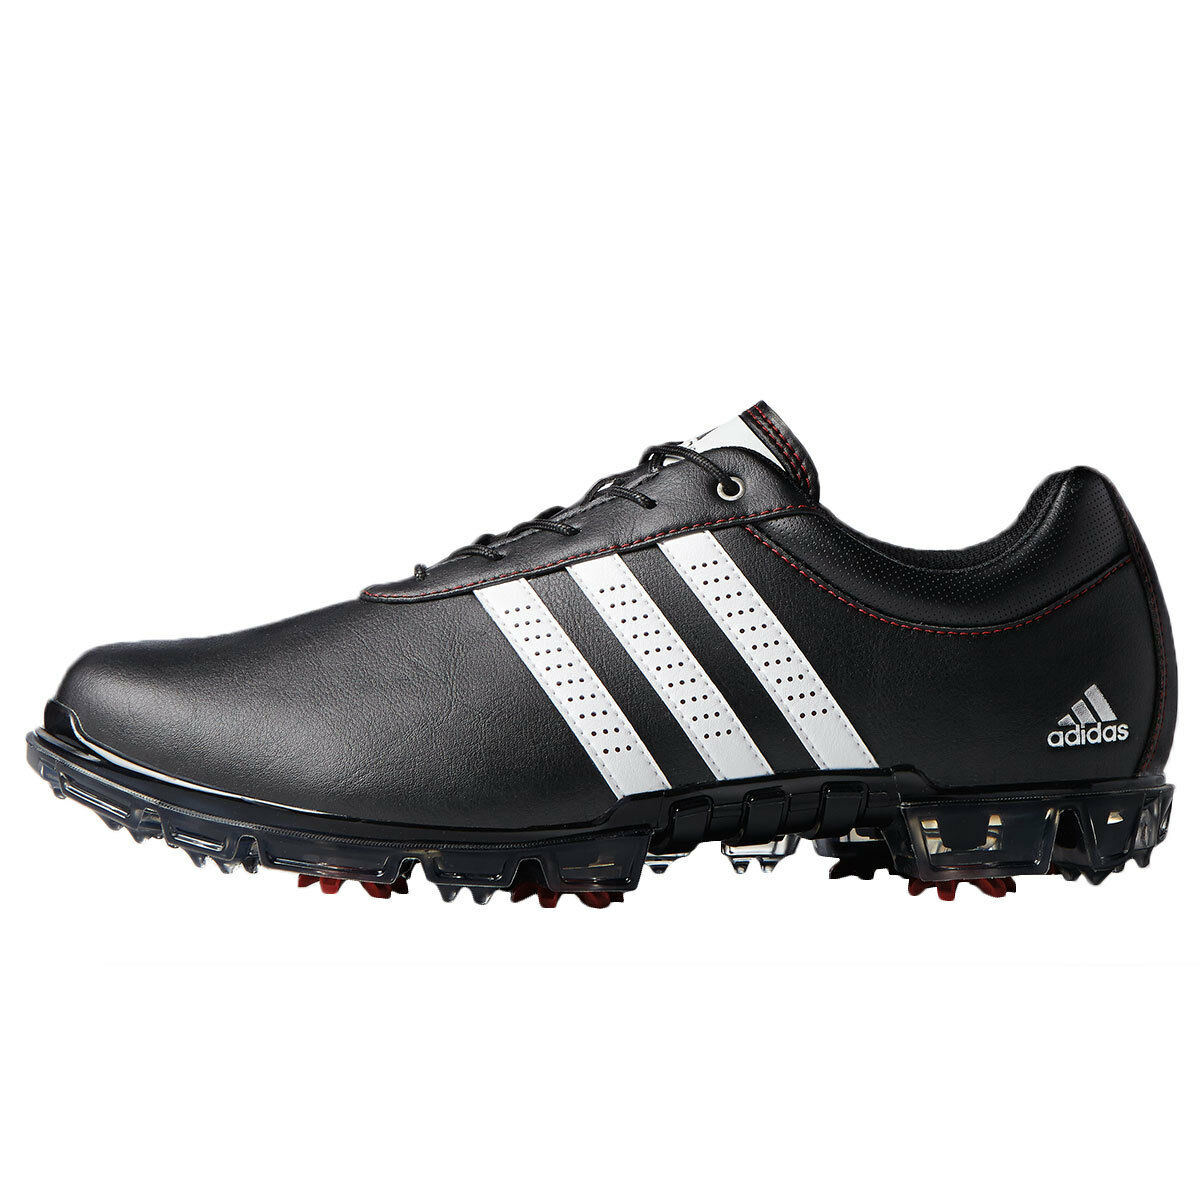 356b7be7ae9 Adidas 2018 Golf Mens Adipure Flex WD Golf Shoes Lightweight Waterproof